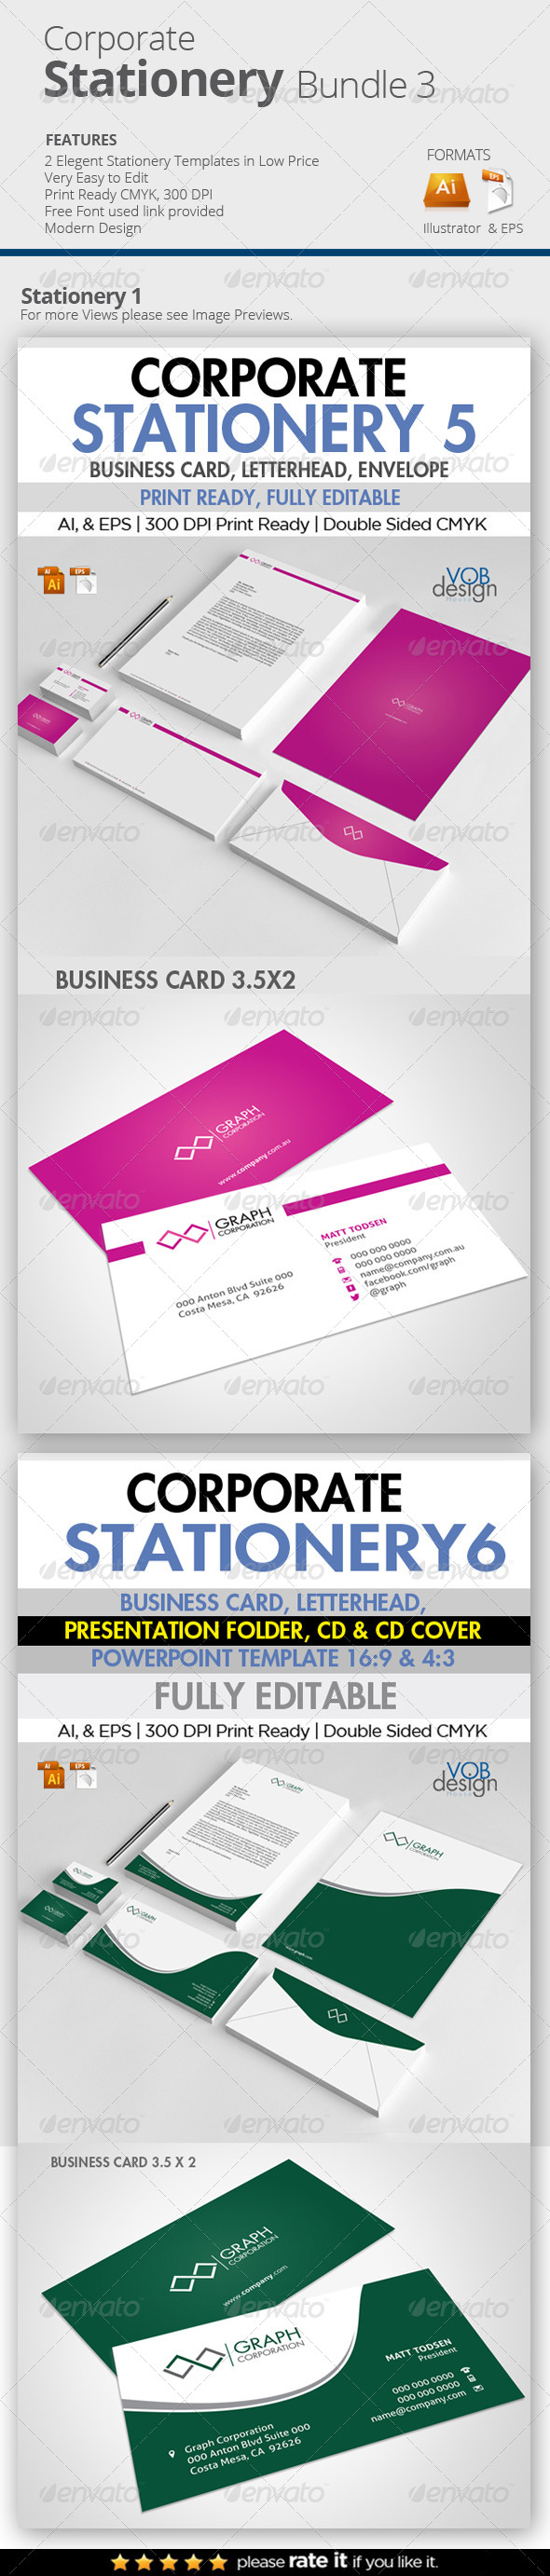 GraphicRiver Edit Corporate Stationery Bundle 3 7777419